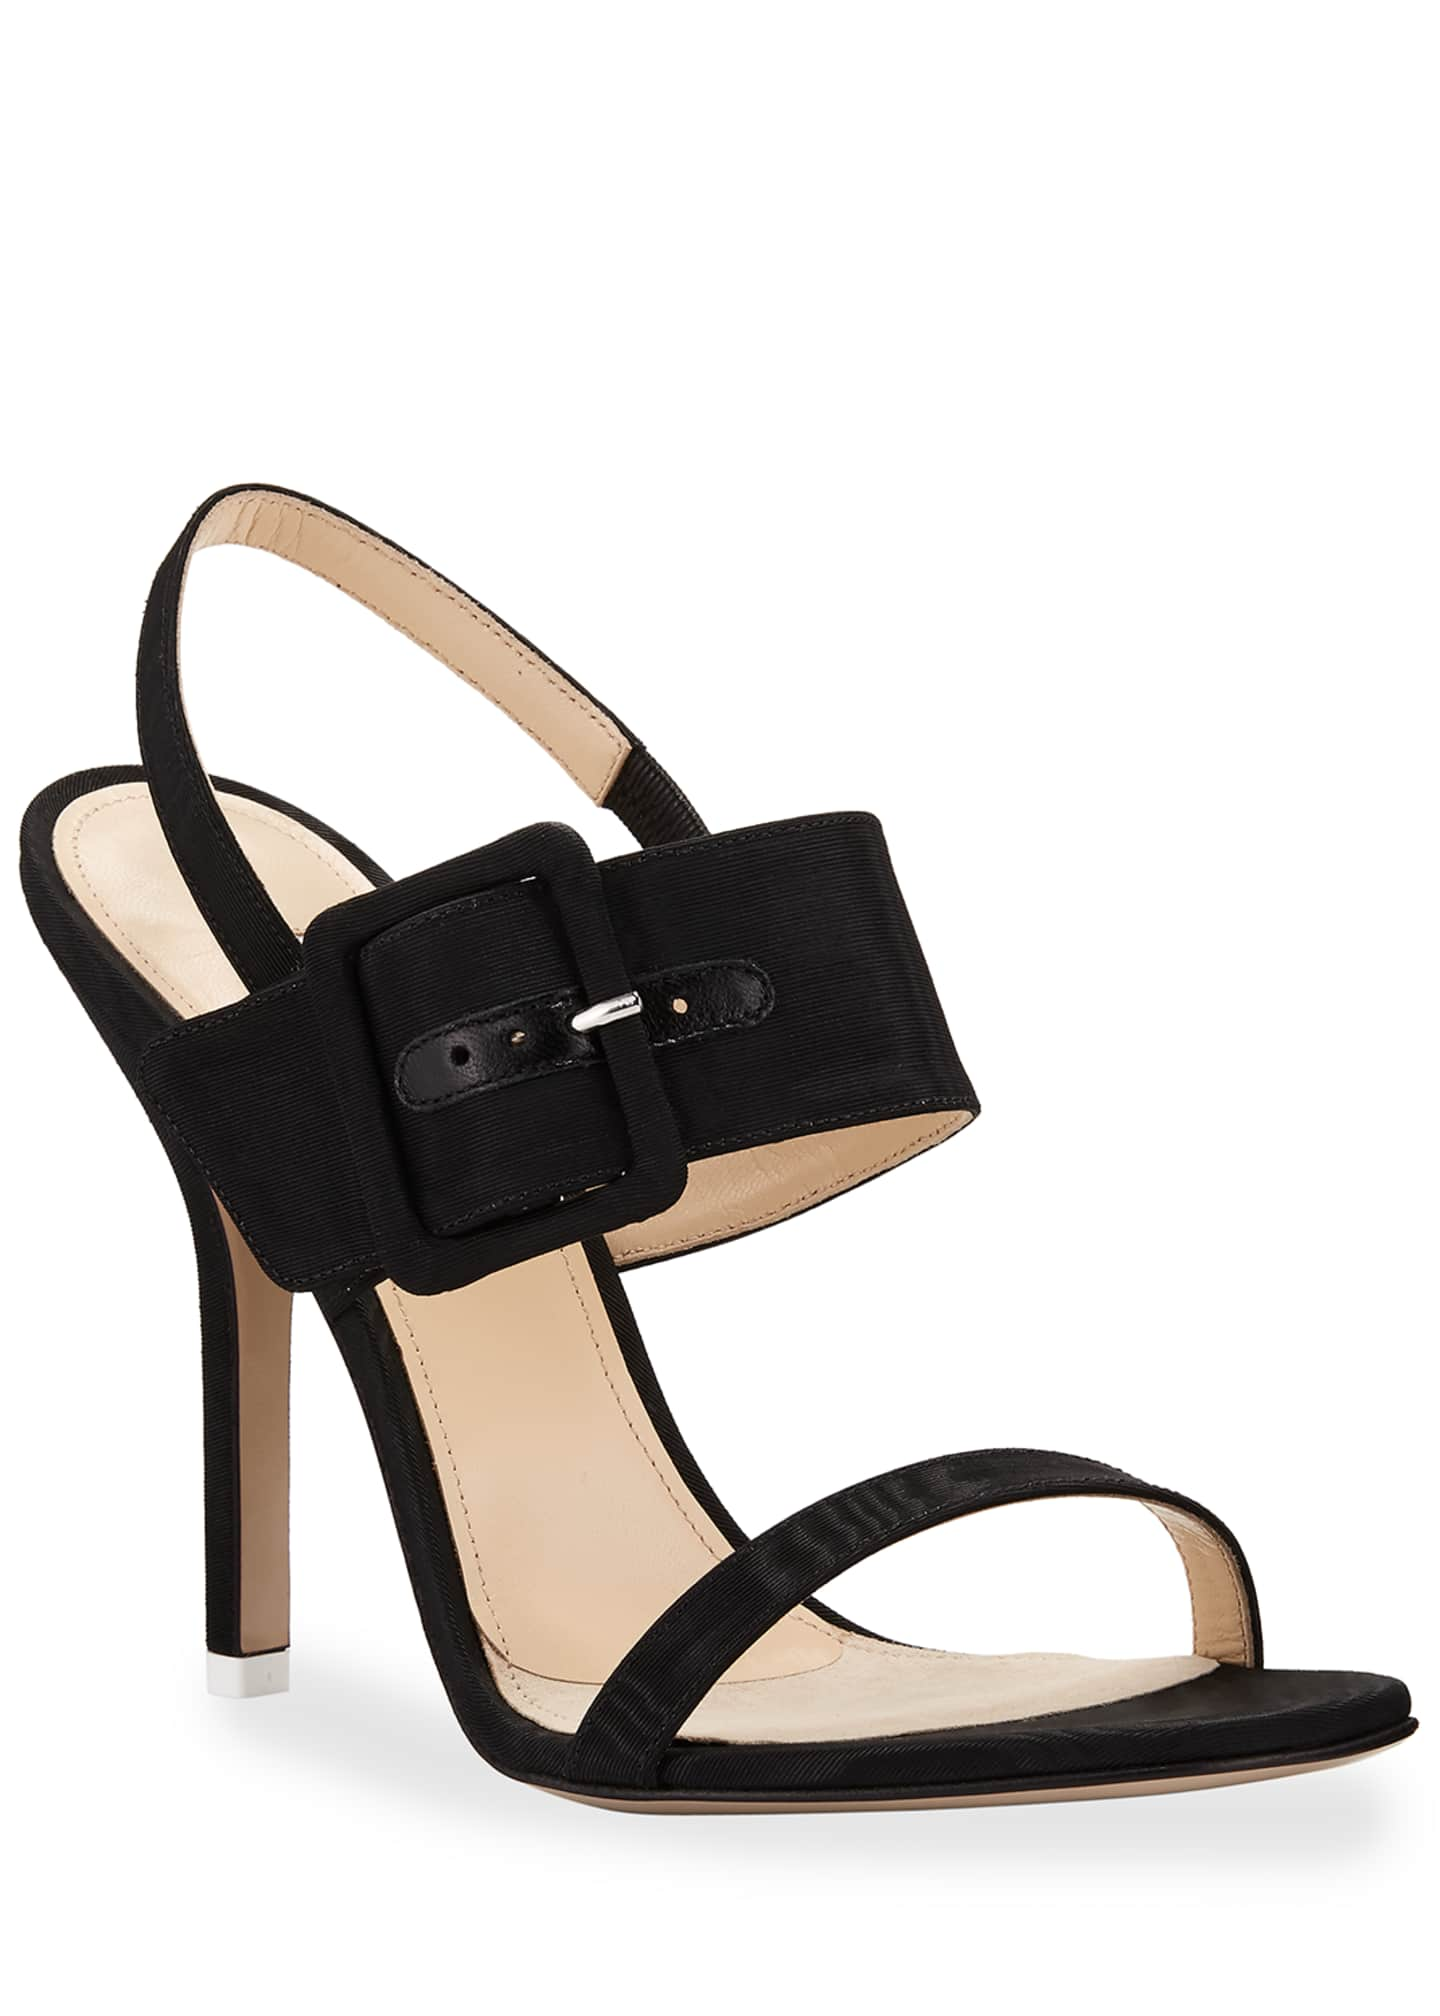 The Attico Mariah Fabric Buckle Sandals